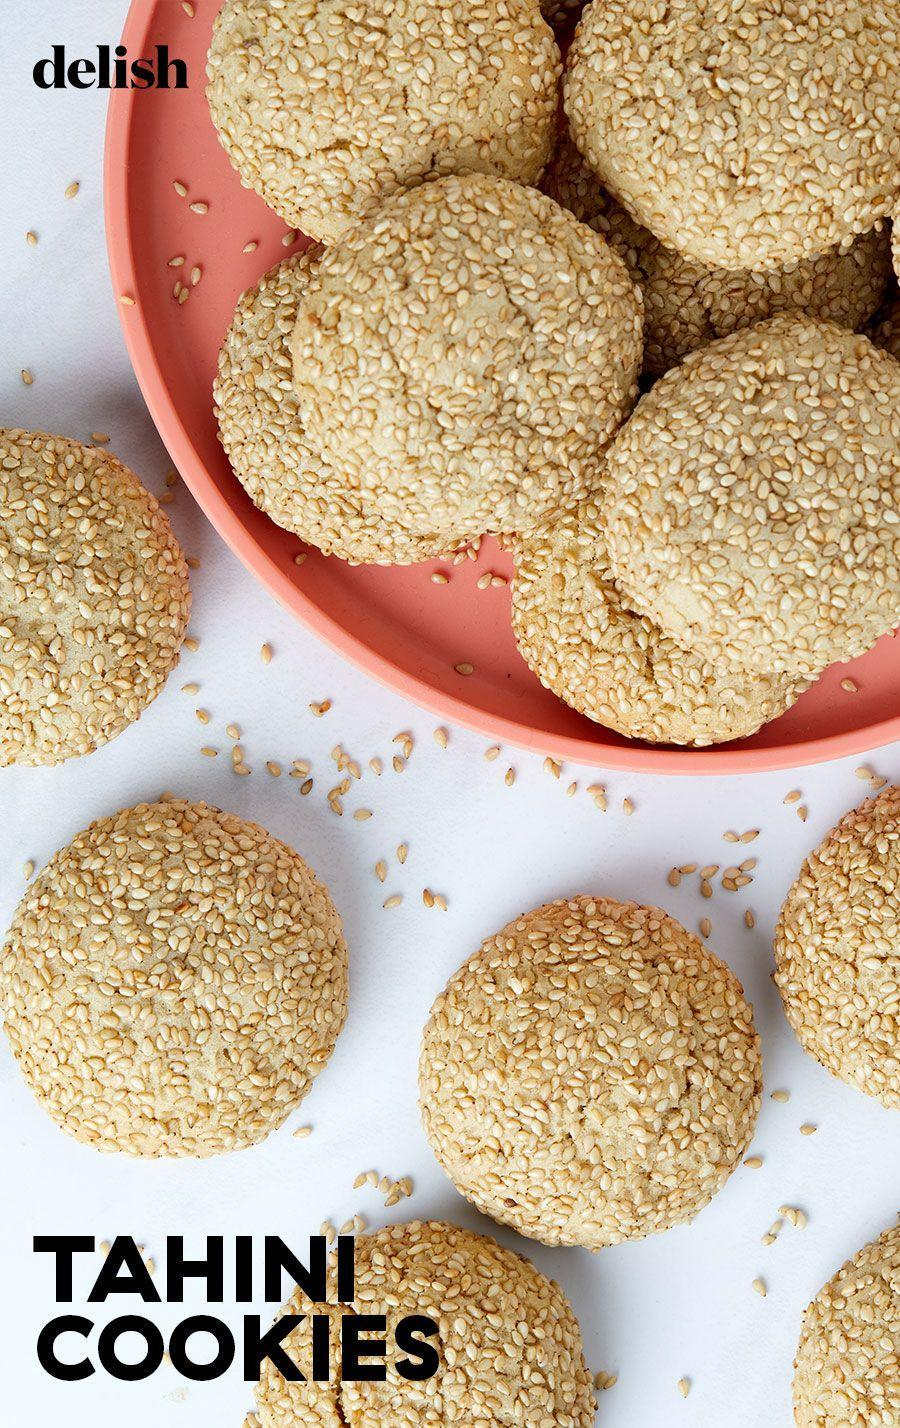 """<p>Tahini cookies are kind of like a more grown up version of your favorite <a href=""""https://www.delish.com/cooking/recipe-ideas/recipes/a51462/easy-peanut-butter-cookie-recipe/"""" rel=""""nofollow noopener"""" target=""""_blank"""" data-ylk=""""slk:peanut butter cookie"""" class=""""link rapid-noclick-resp"""">peanut butter cookie</a> and so much better. They are soft with a slight chew and sesame seeds on the outside add a slight crunch.</p><p>Get the recipe from <a href=""""https://www.delish.com/cooking/recipe-ideas/a35046470/tahini-cookies-recipe/"""" rel=""""nofollow noopener"""" target=""""_blank"""" data-ylk=""""slk:Delish"""" class=""""link rapid-noclick-resp"""">Delish</a>.</p>"""